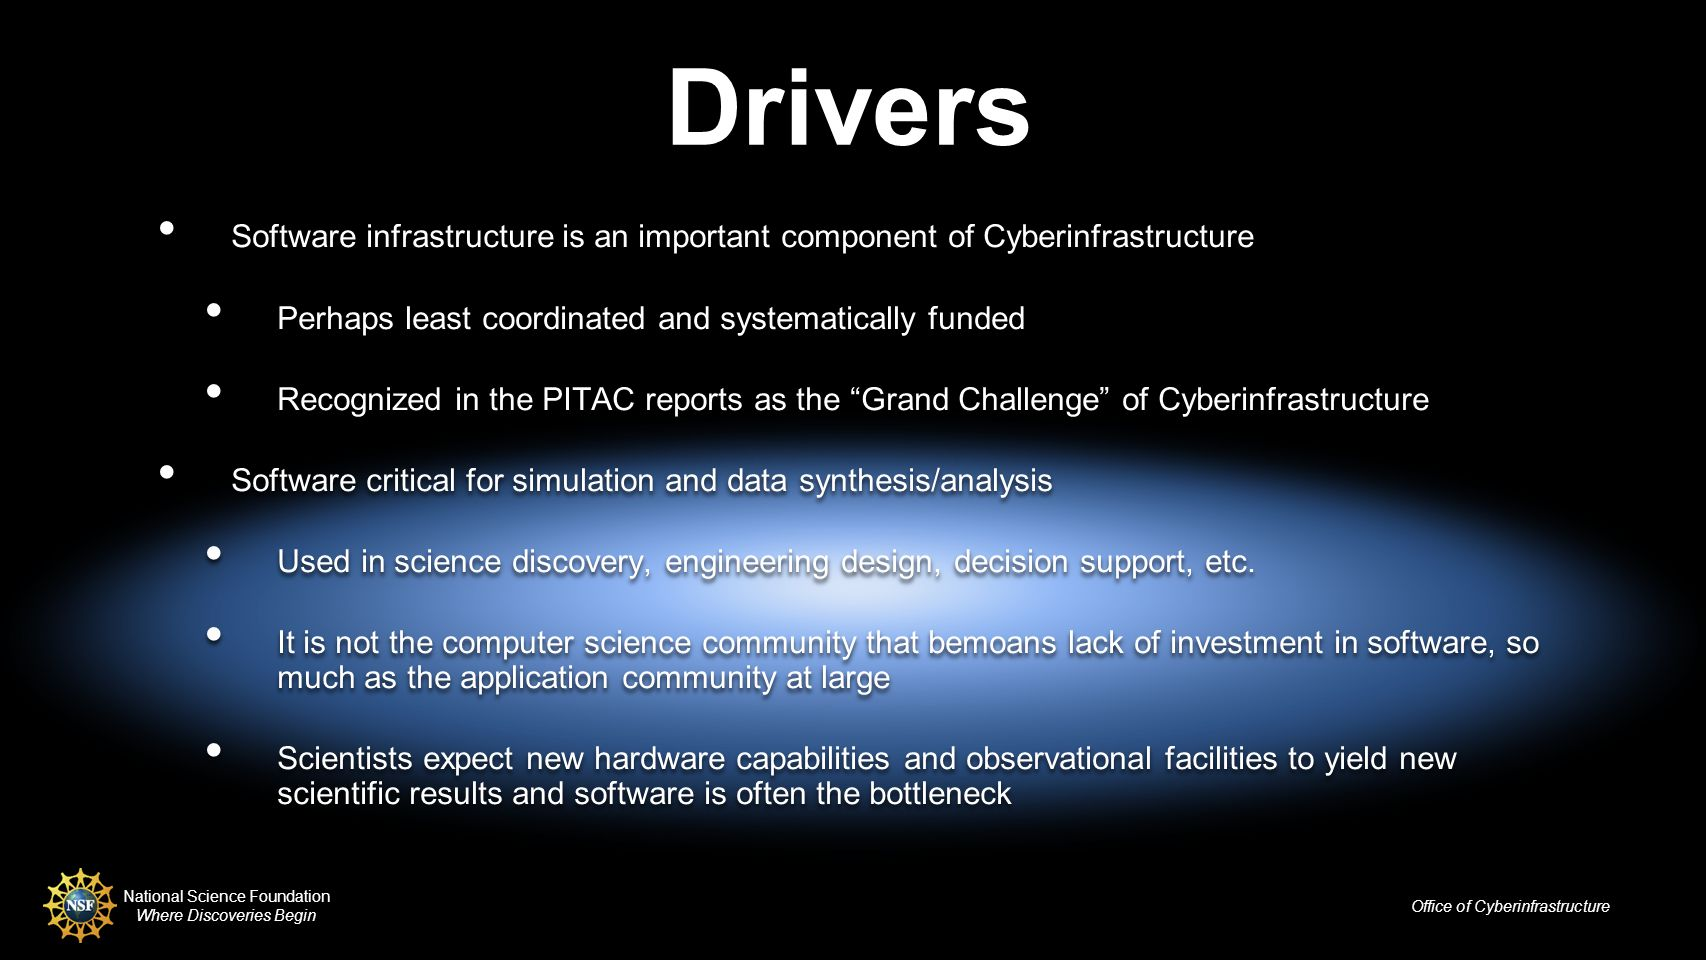 National Science Foundation Where Discoveries Begin Office of Cyberinfrastructure Drivers Software infrastructure is an important component of Cyberinfrastructure Perhaps least coordinated and systematically funded Recognized in the PITAC reports as the Grand Challenge of Cyberinfrastructure Software critical for simulation and data synthesis/analysis Used in science discovery, engineering design, decision support, etc.